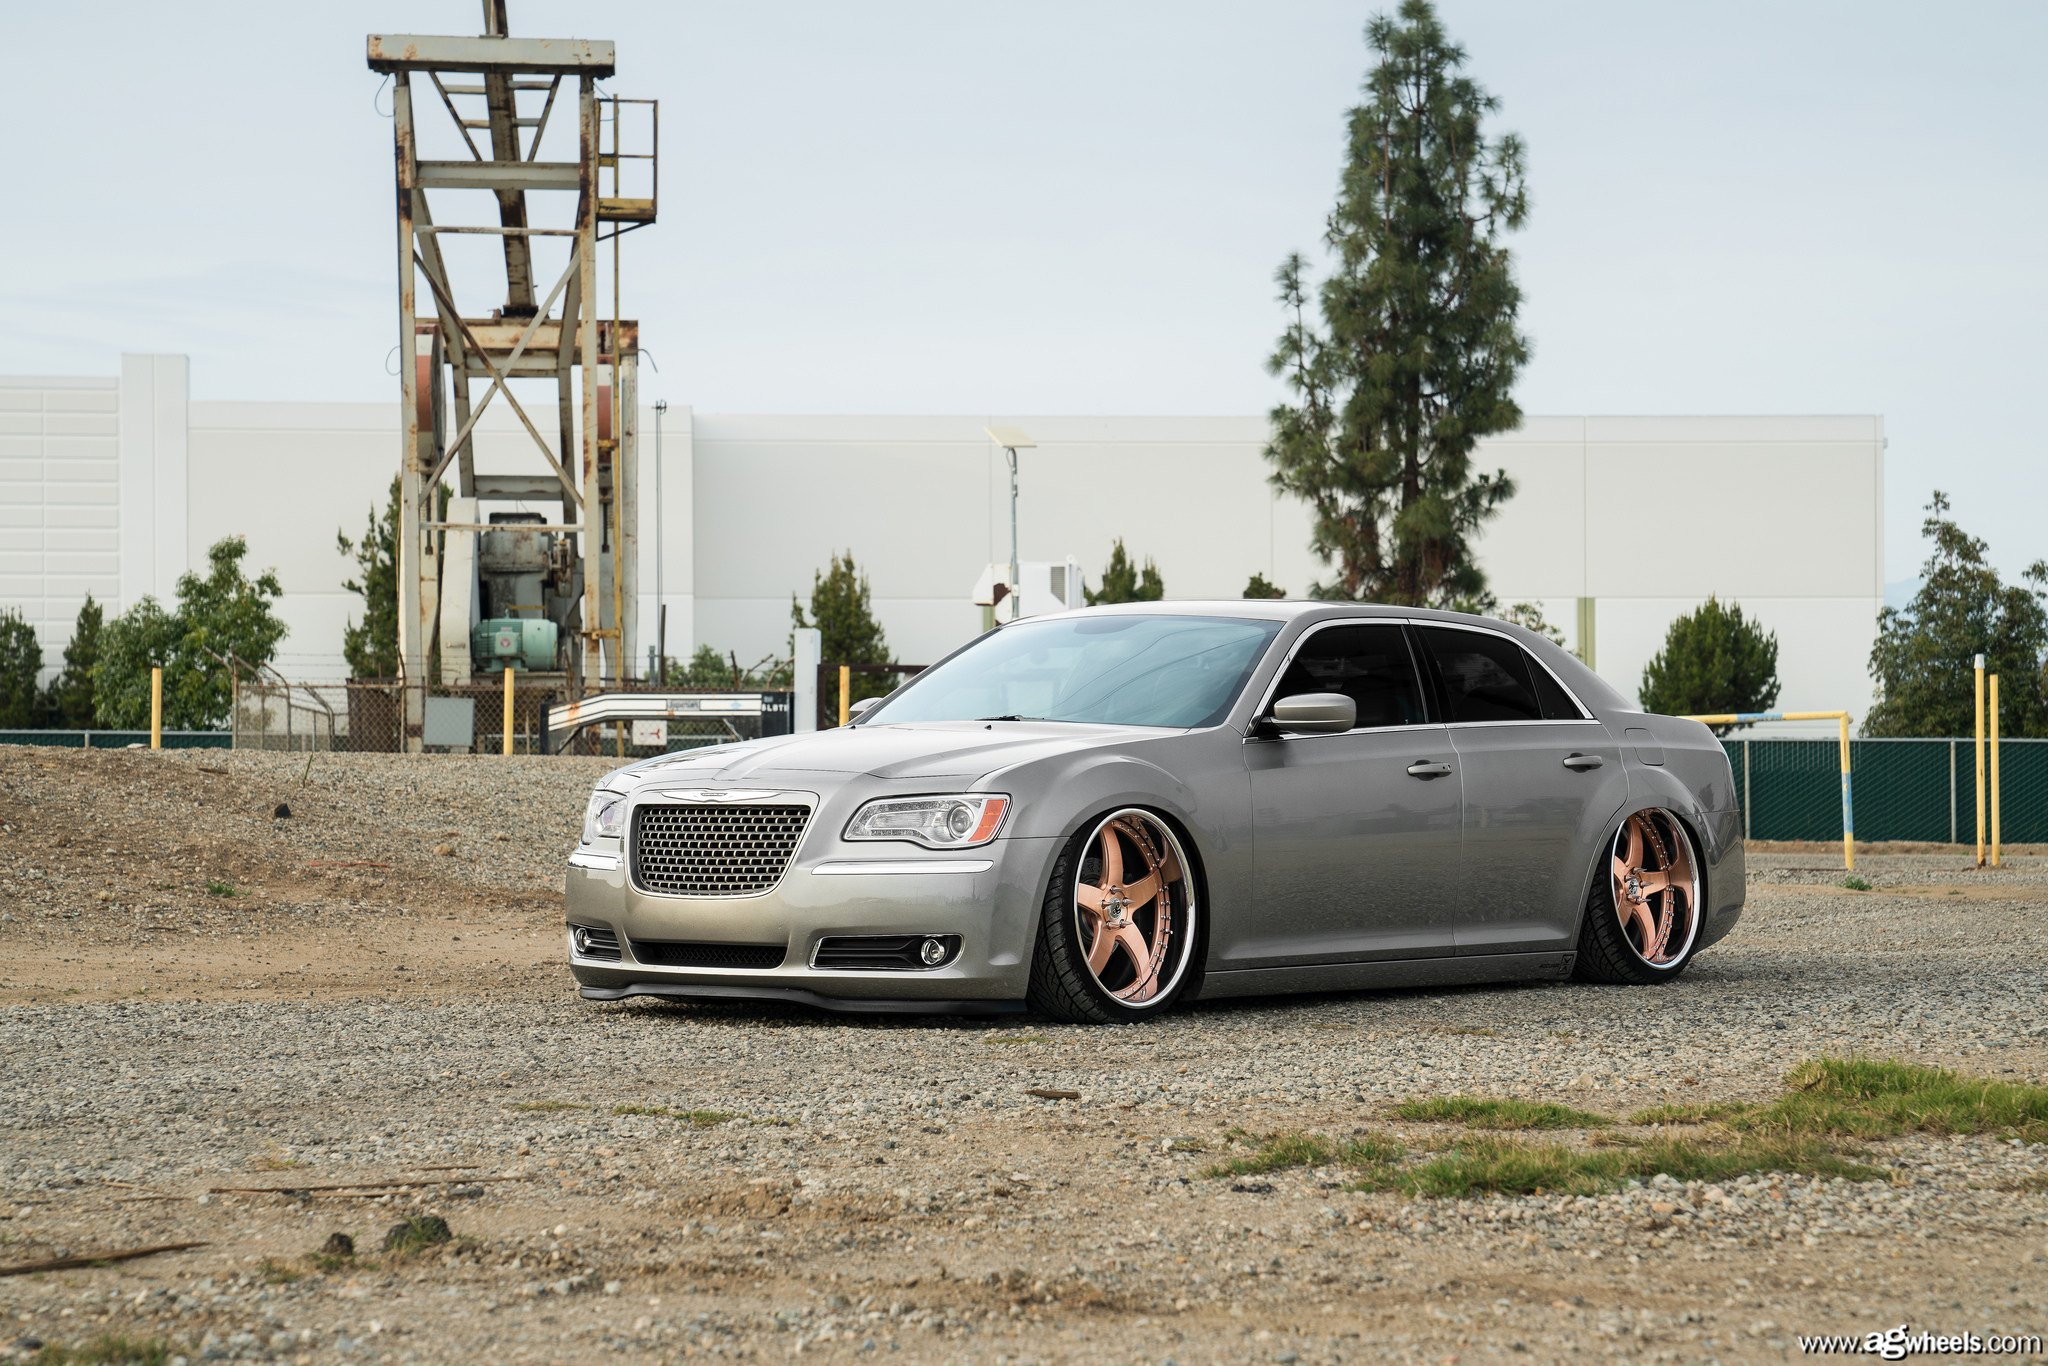 Gray Chrysler 300 with Chrome Mesh Grille - Photo by Avant Garde Wheels